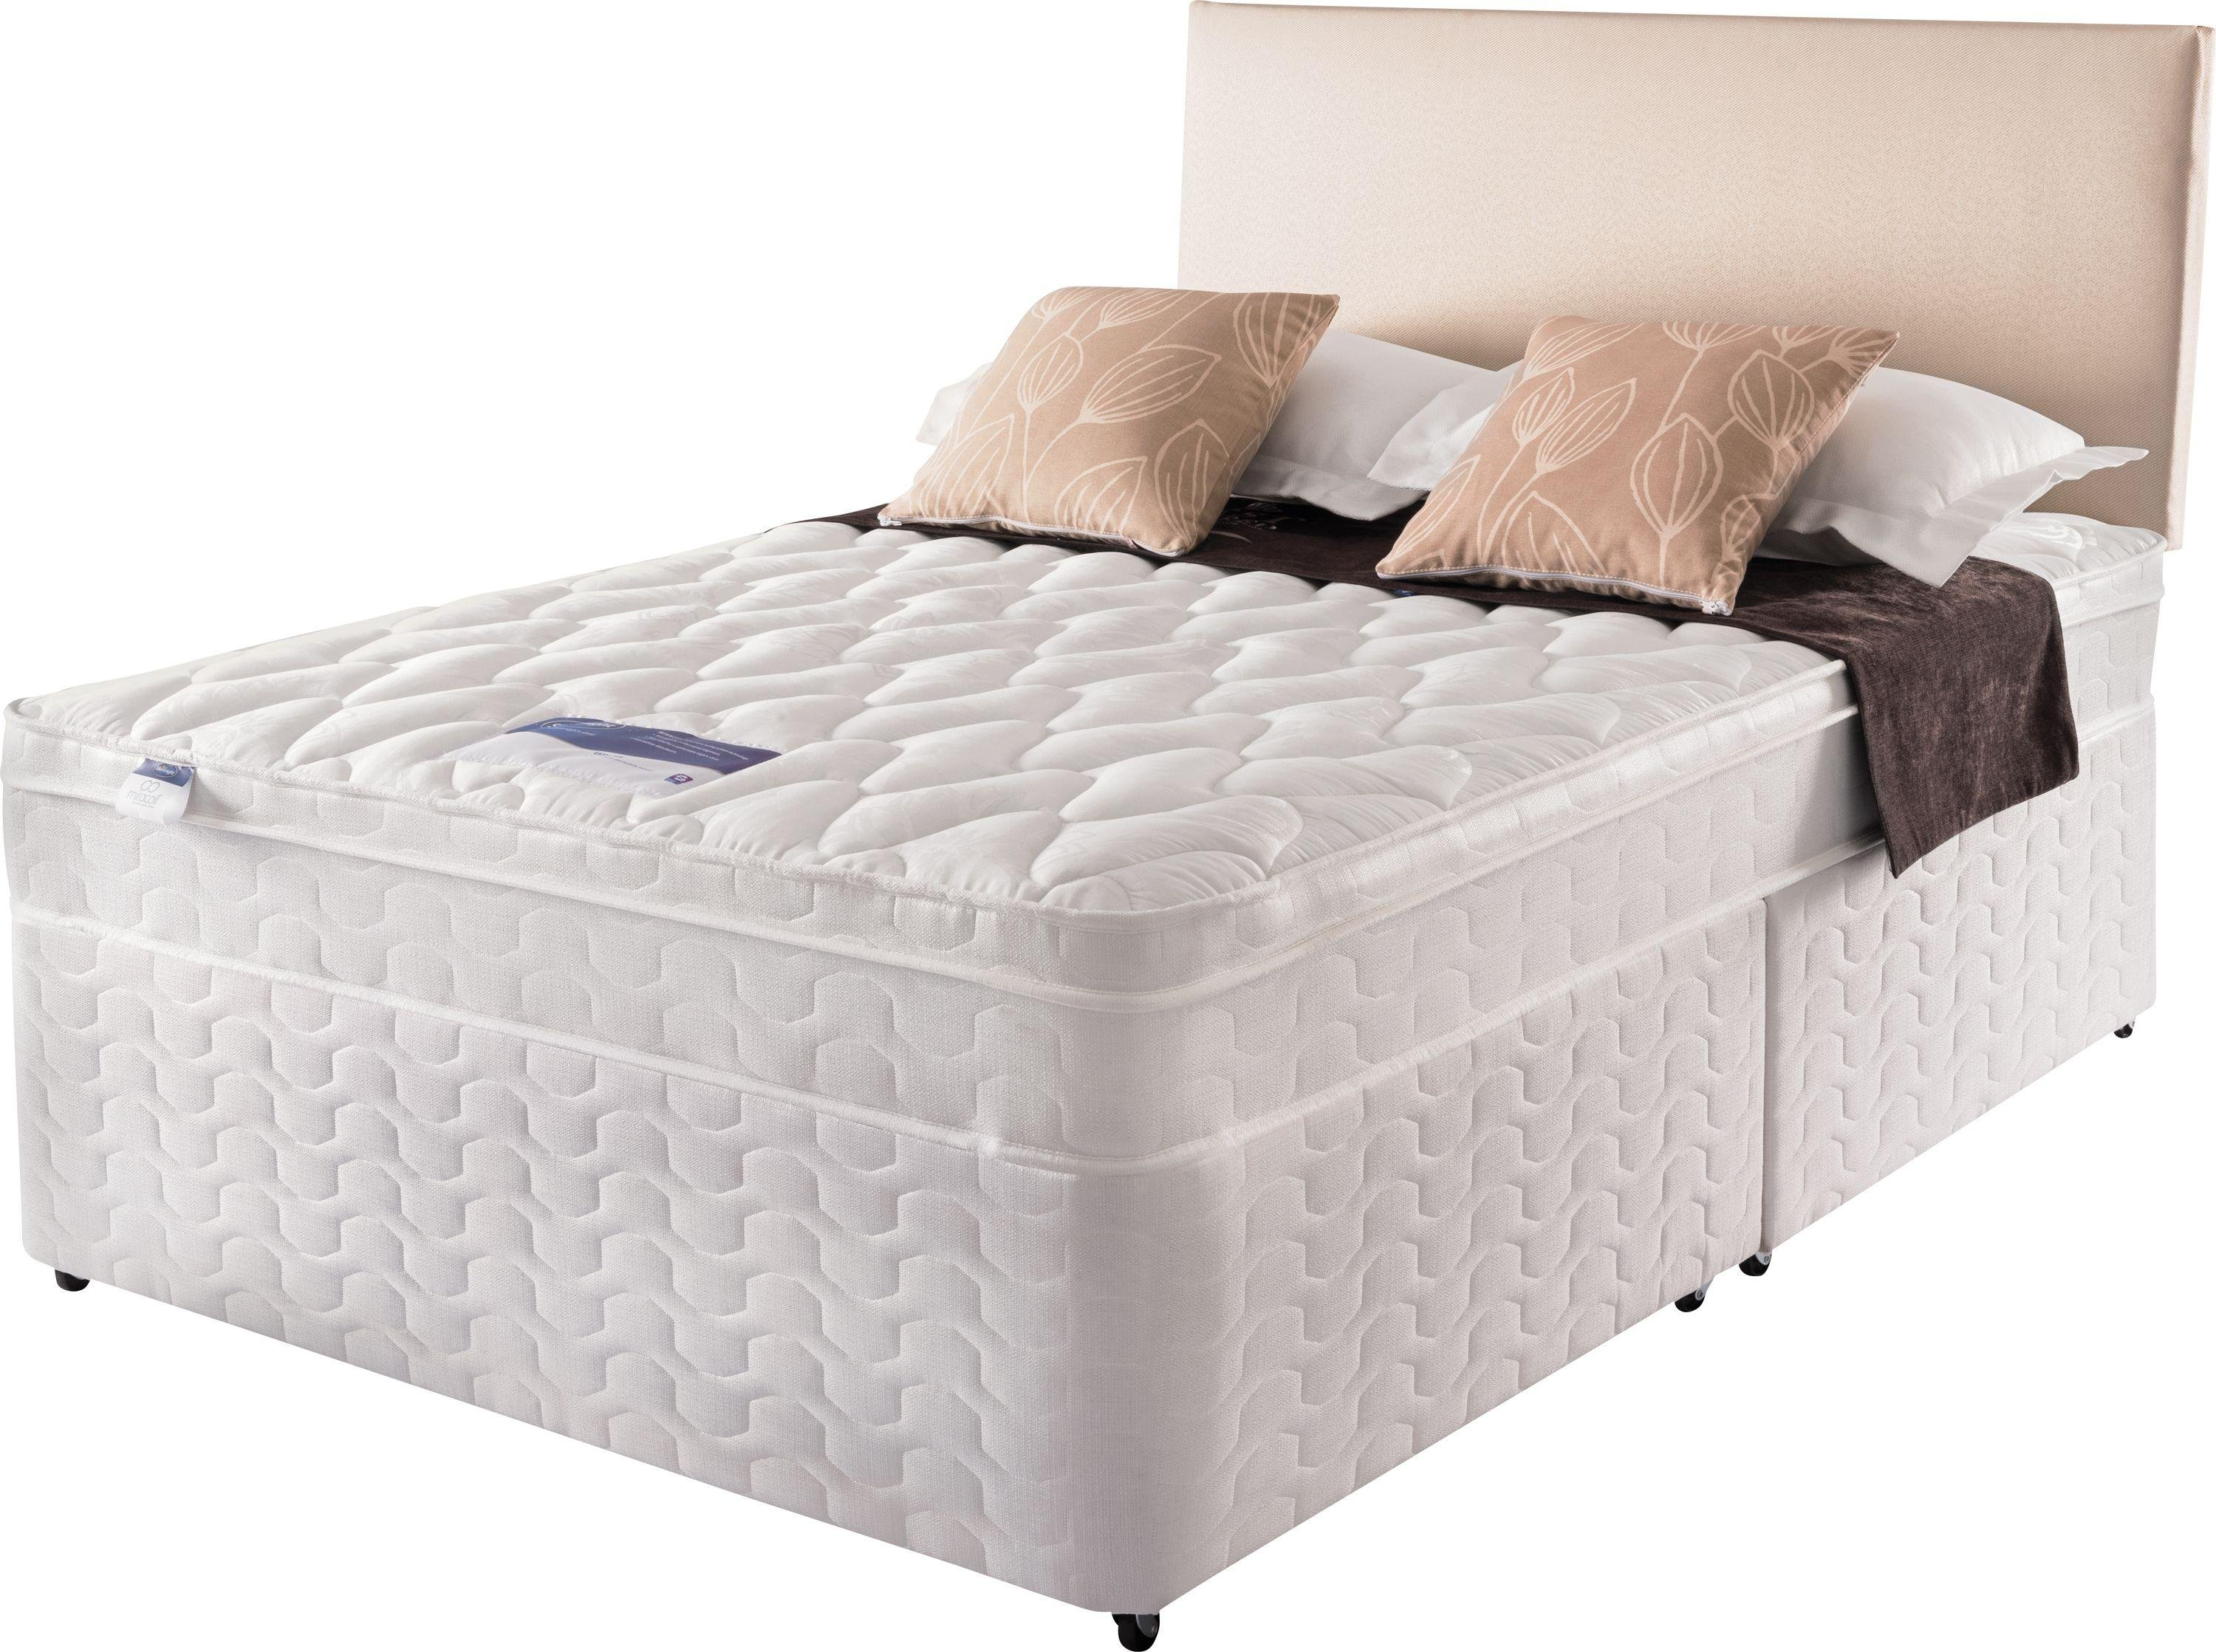 Silentnight auckland luxury small double divan bed 4 drw for Small double divan with mattress